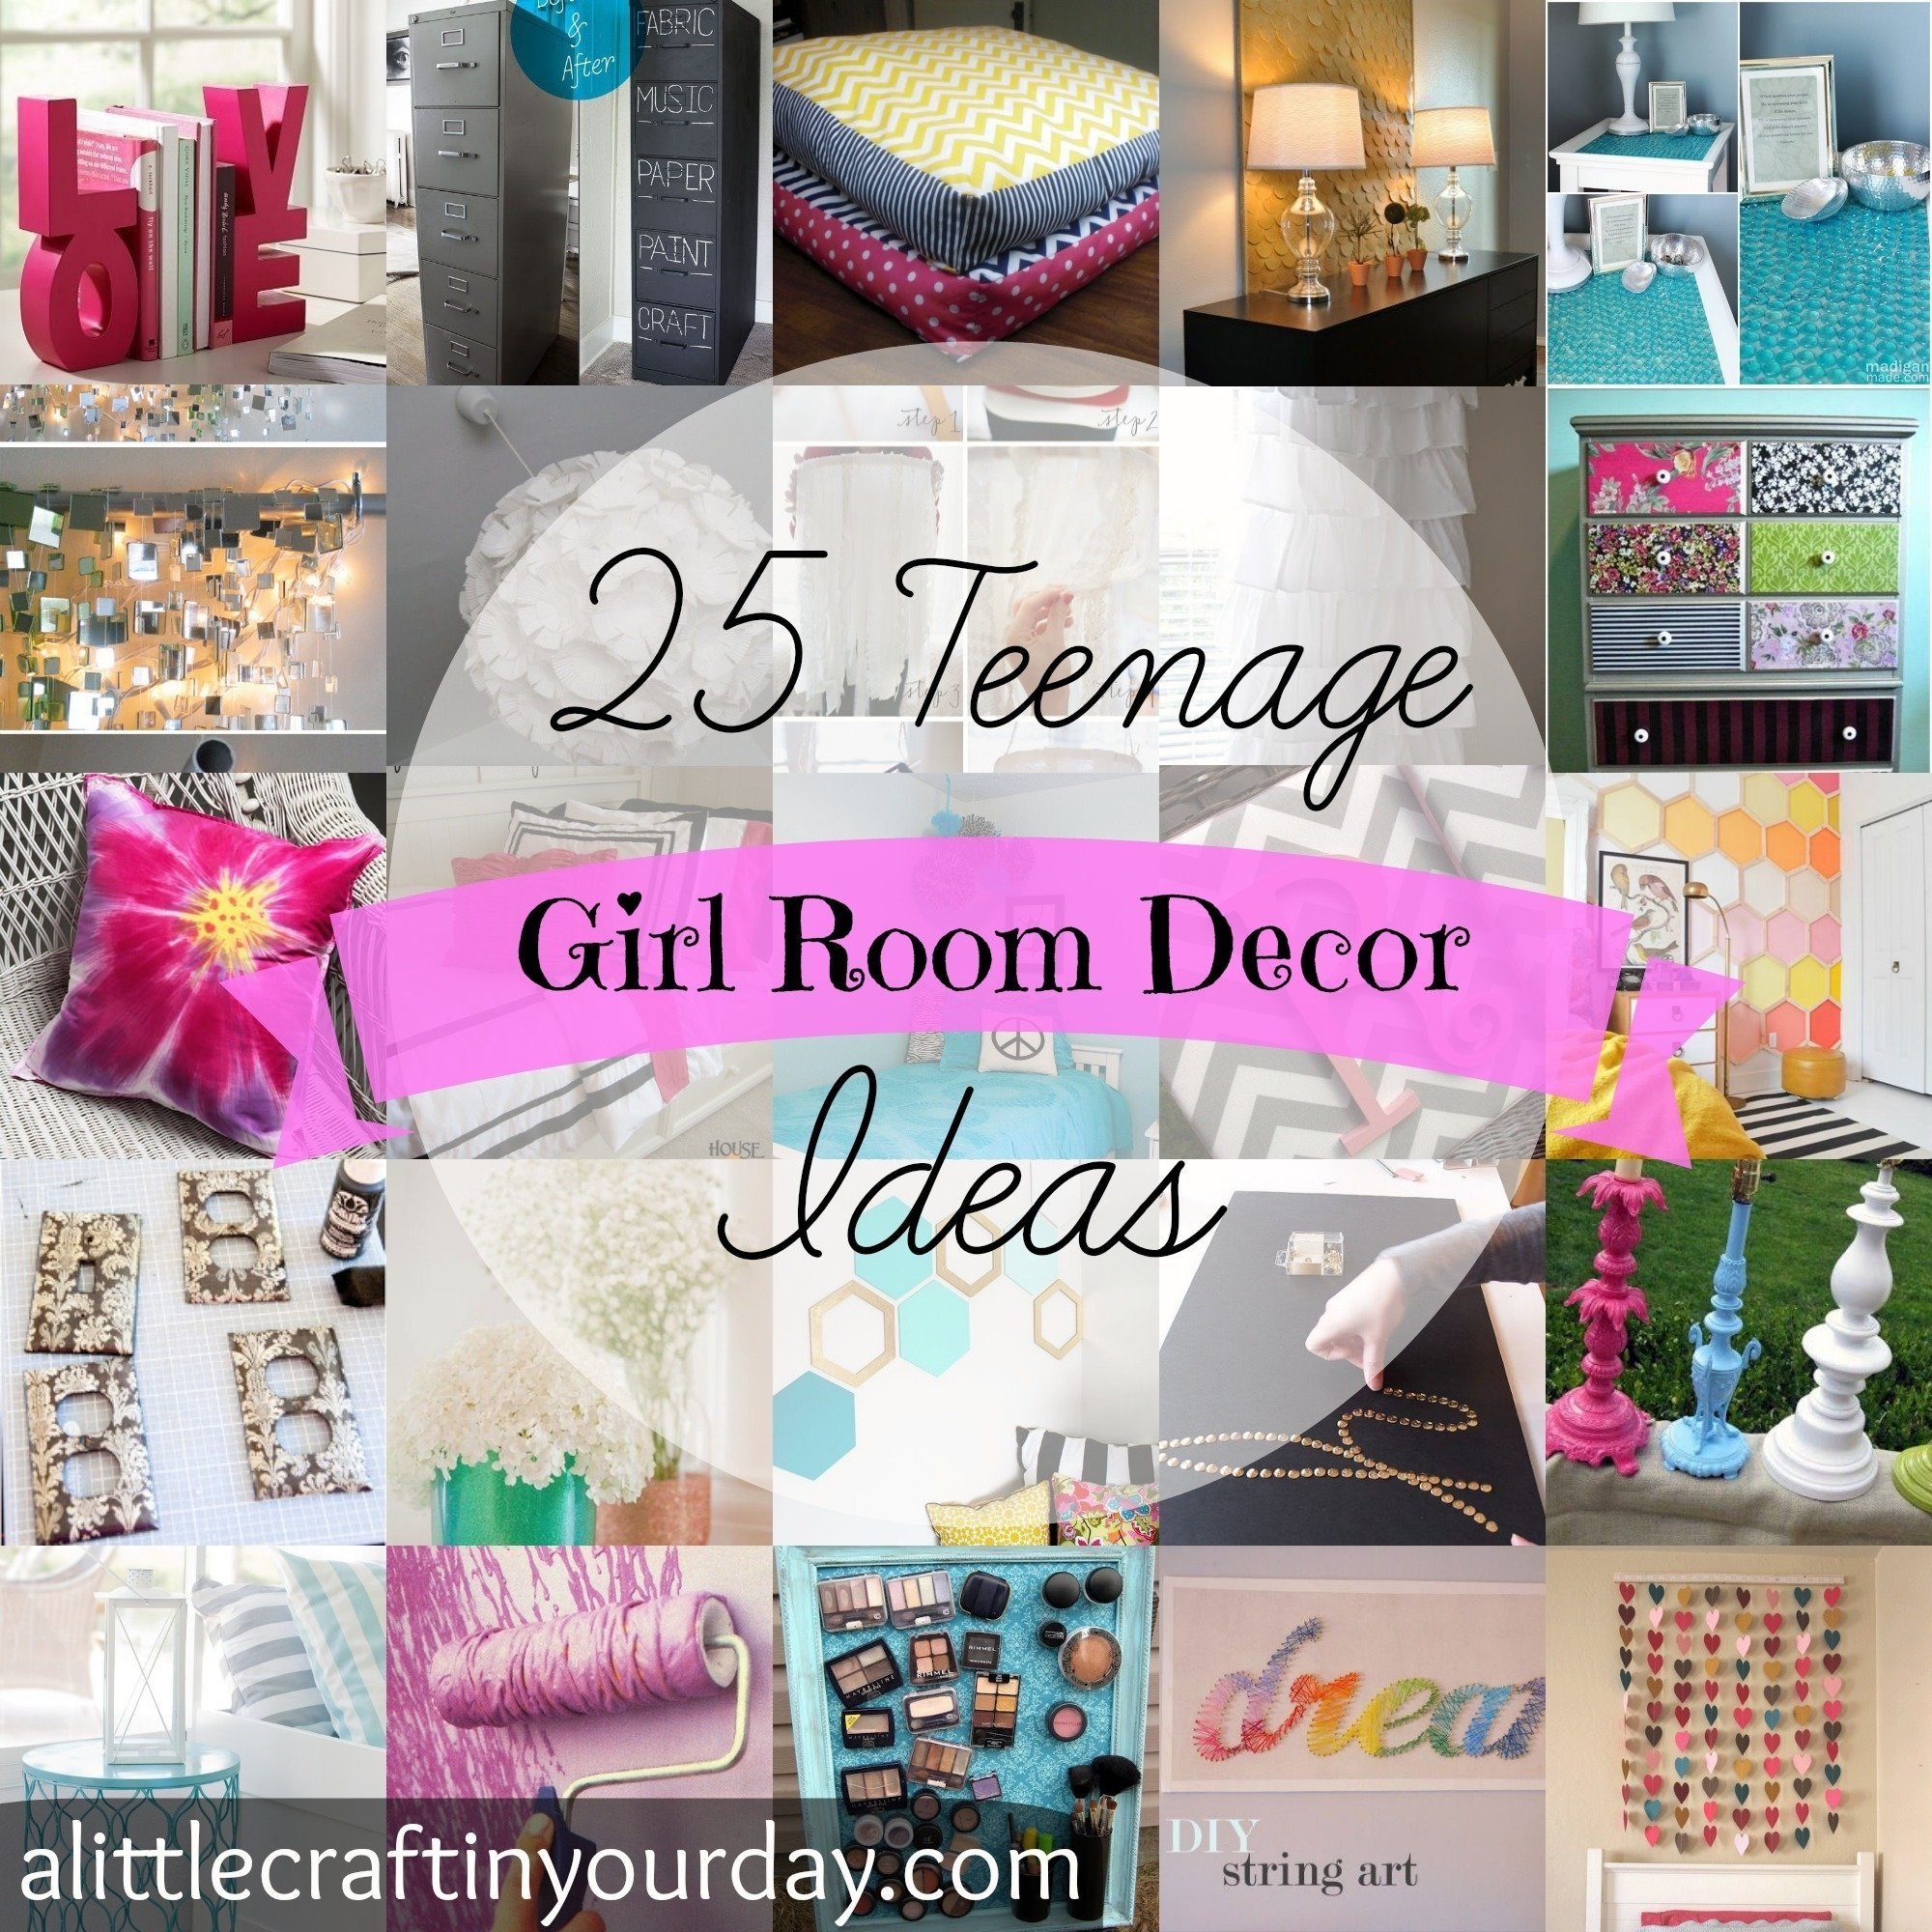 10 Most Popular Crafty Ideas For Your Room 25 teenage girl room decor ideas a little craft in your day 5 2020